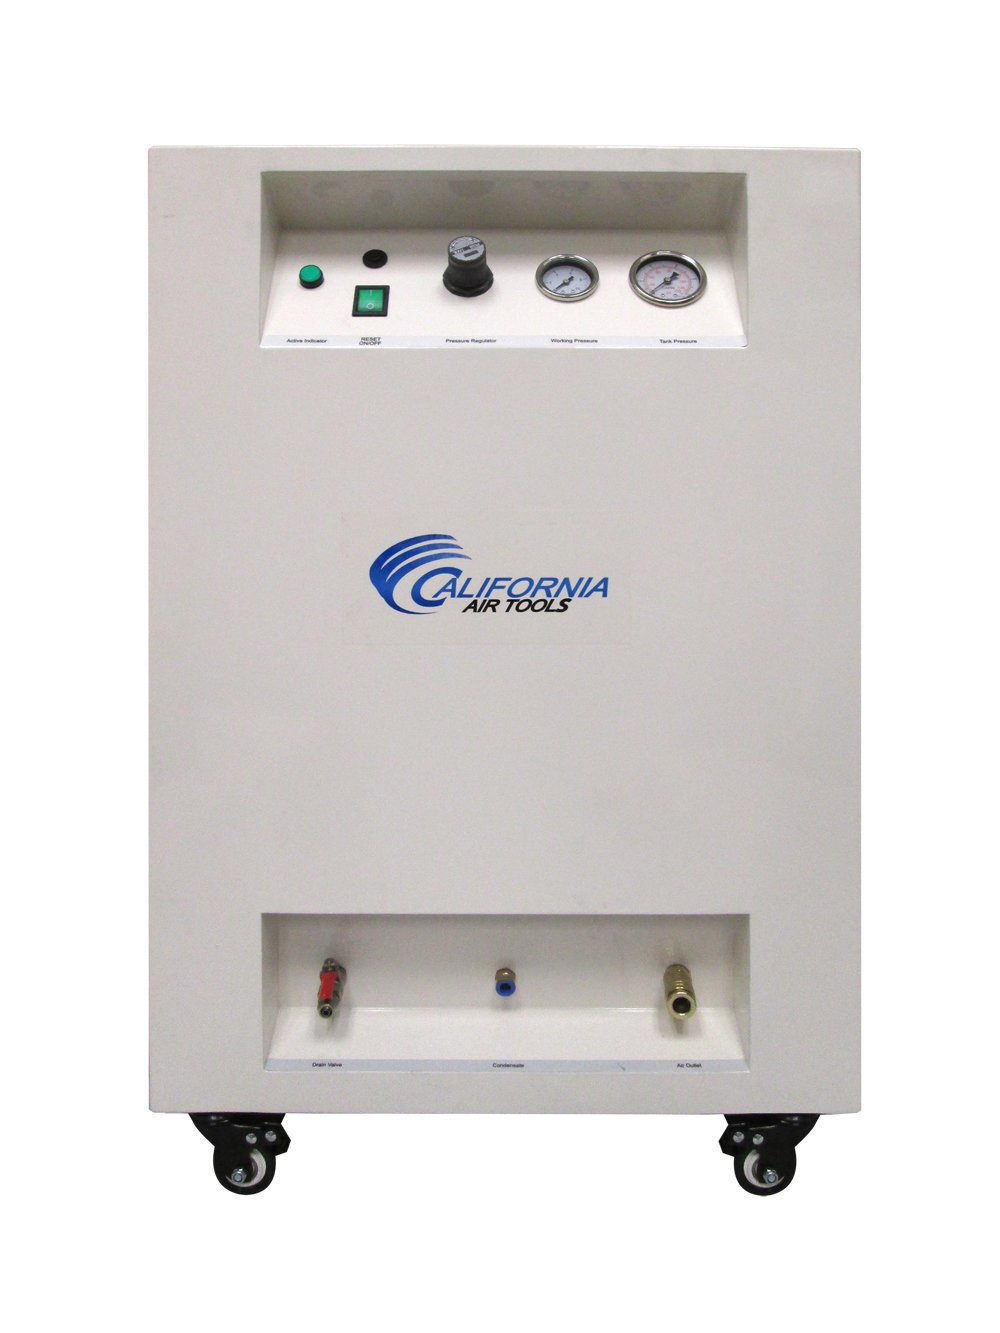 California Air Tools 10020SPC Ultra Quiet & Oil-Free 2.0 hp Steel Tank Air Compressor in Sound Proof Cabinet, 10 gal, White California Air Tools- Home Improvement